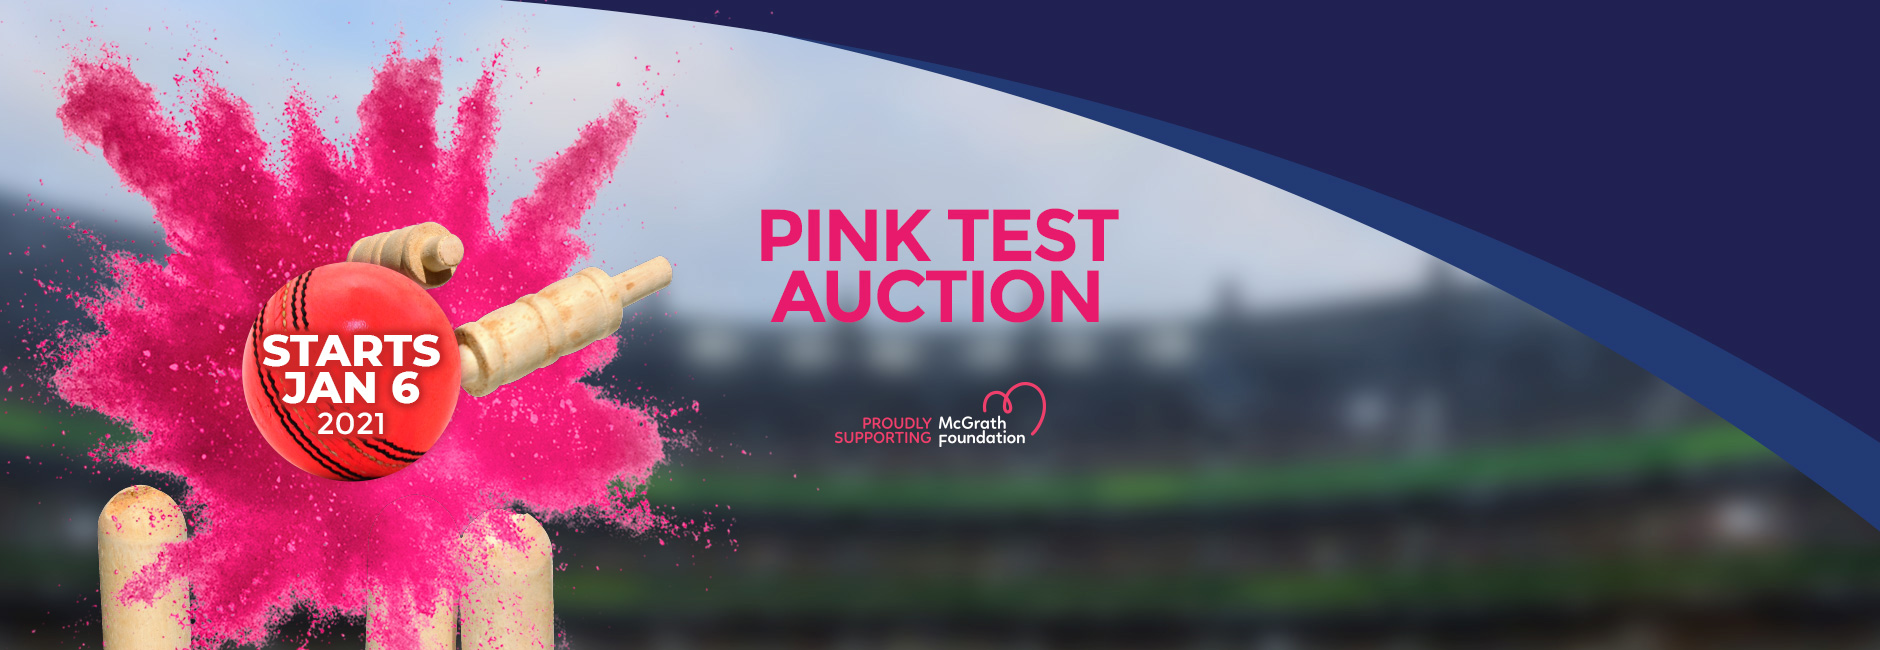 McGrath Foundation Charity Auction - Pink Test 2021